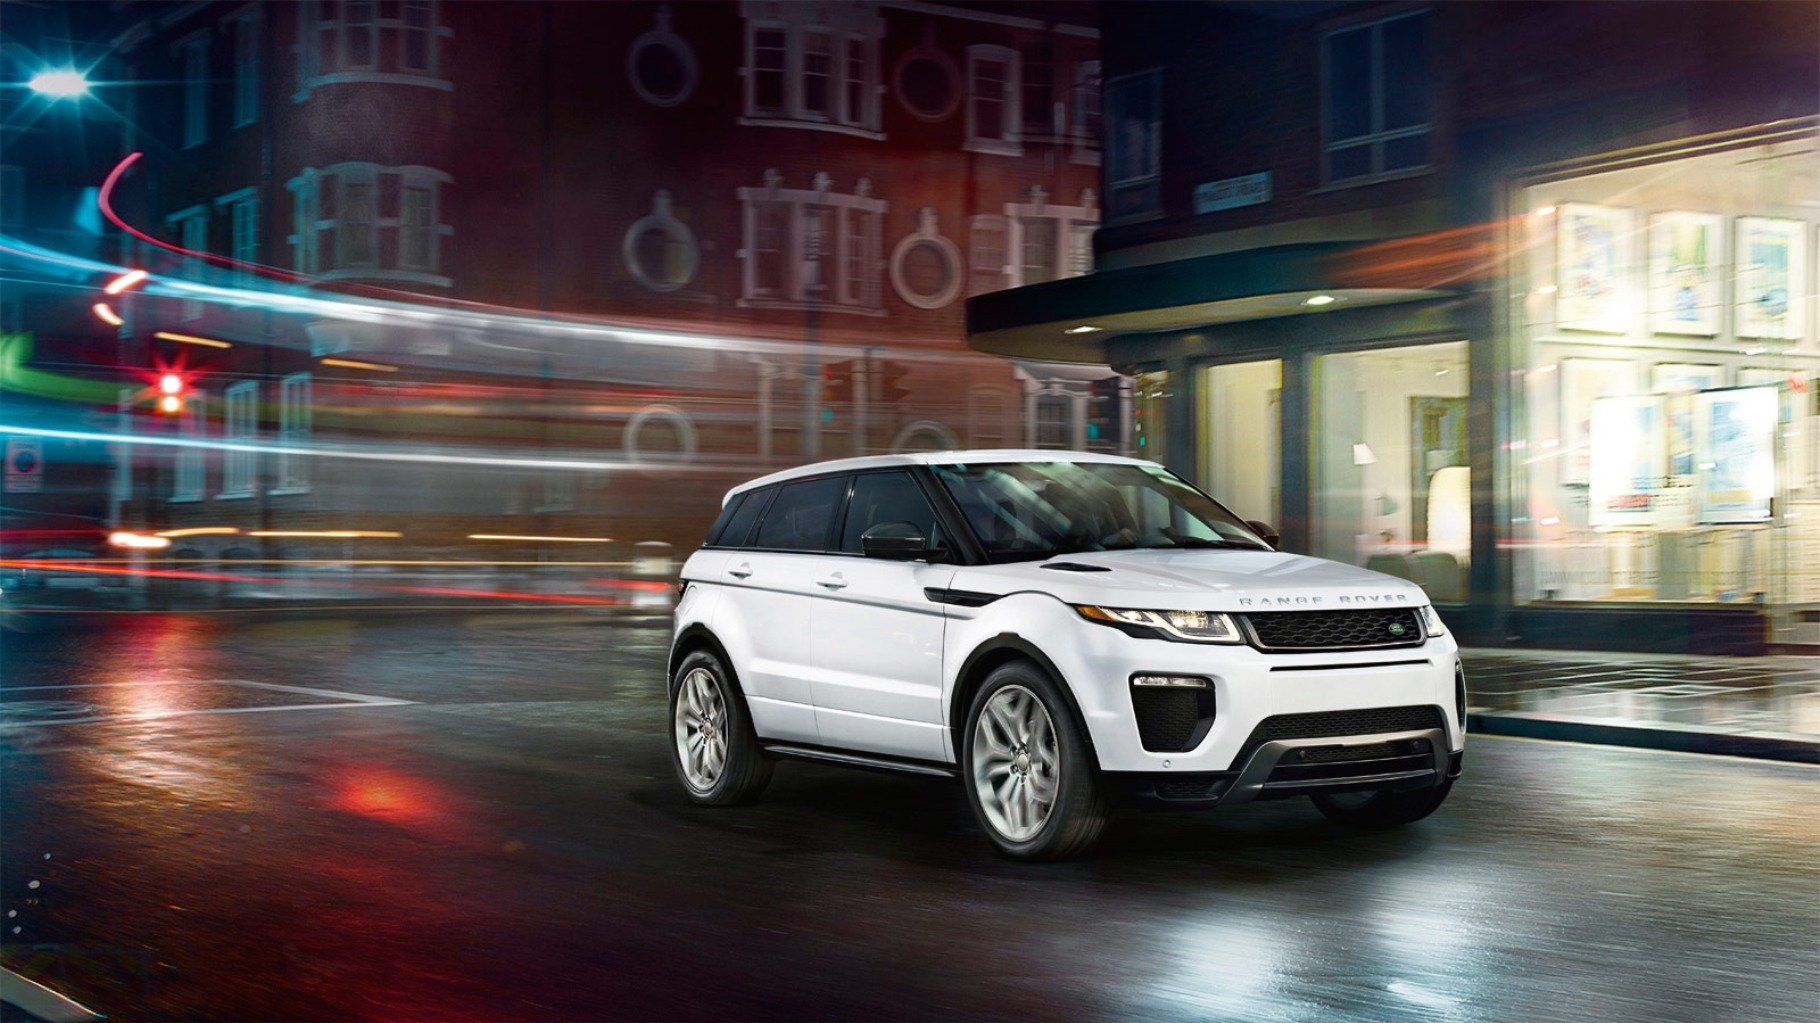 New 2019 Land Rover Range Rover Evoque model in Pasadena